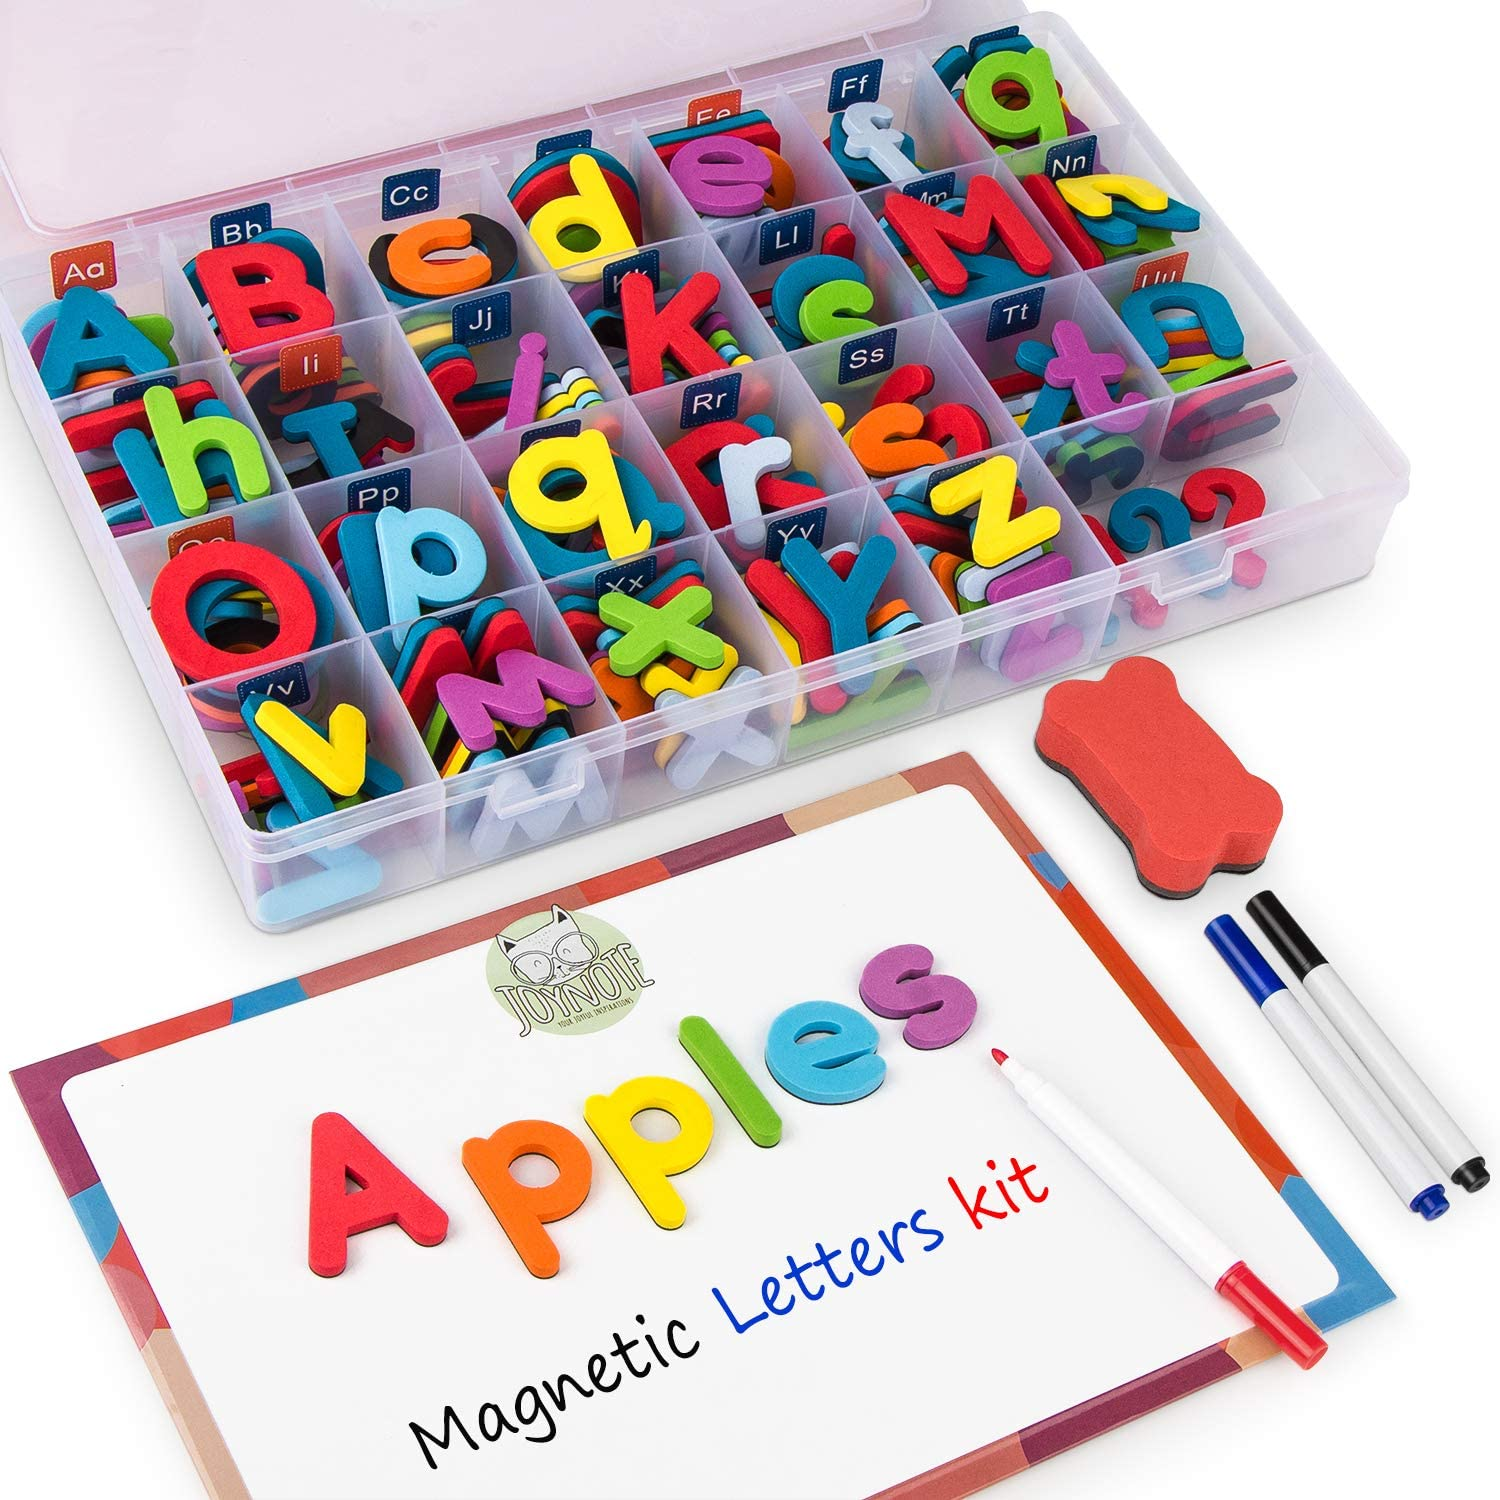 Gamenote Classroom Magnetic Alphabet Letters Kit 208 Pcs with Double-Side Magnet Board - Foam Alphabet Letters for Preschool Kids Toddler Spelling and Learning Colorful